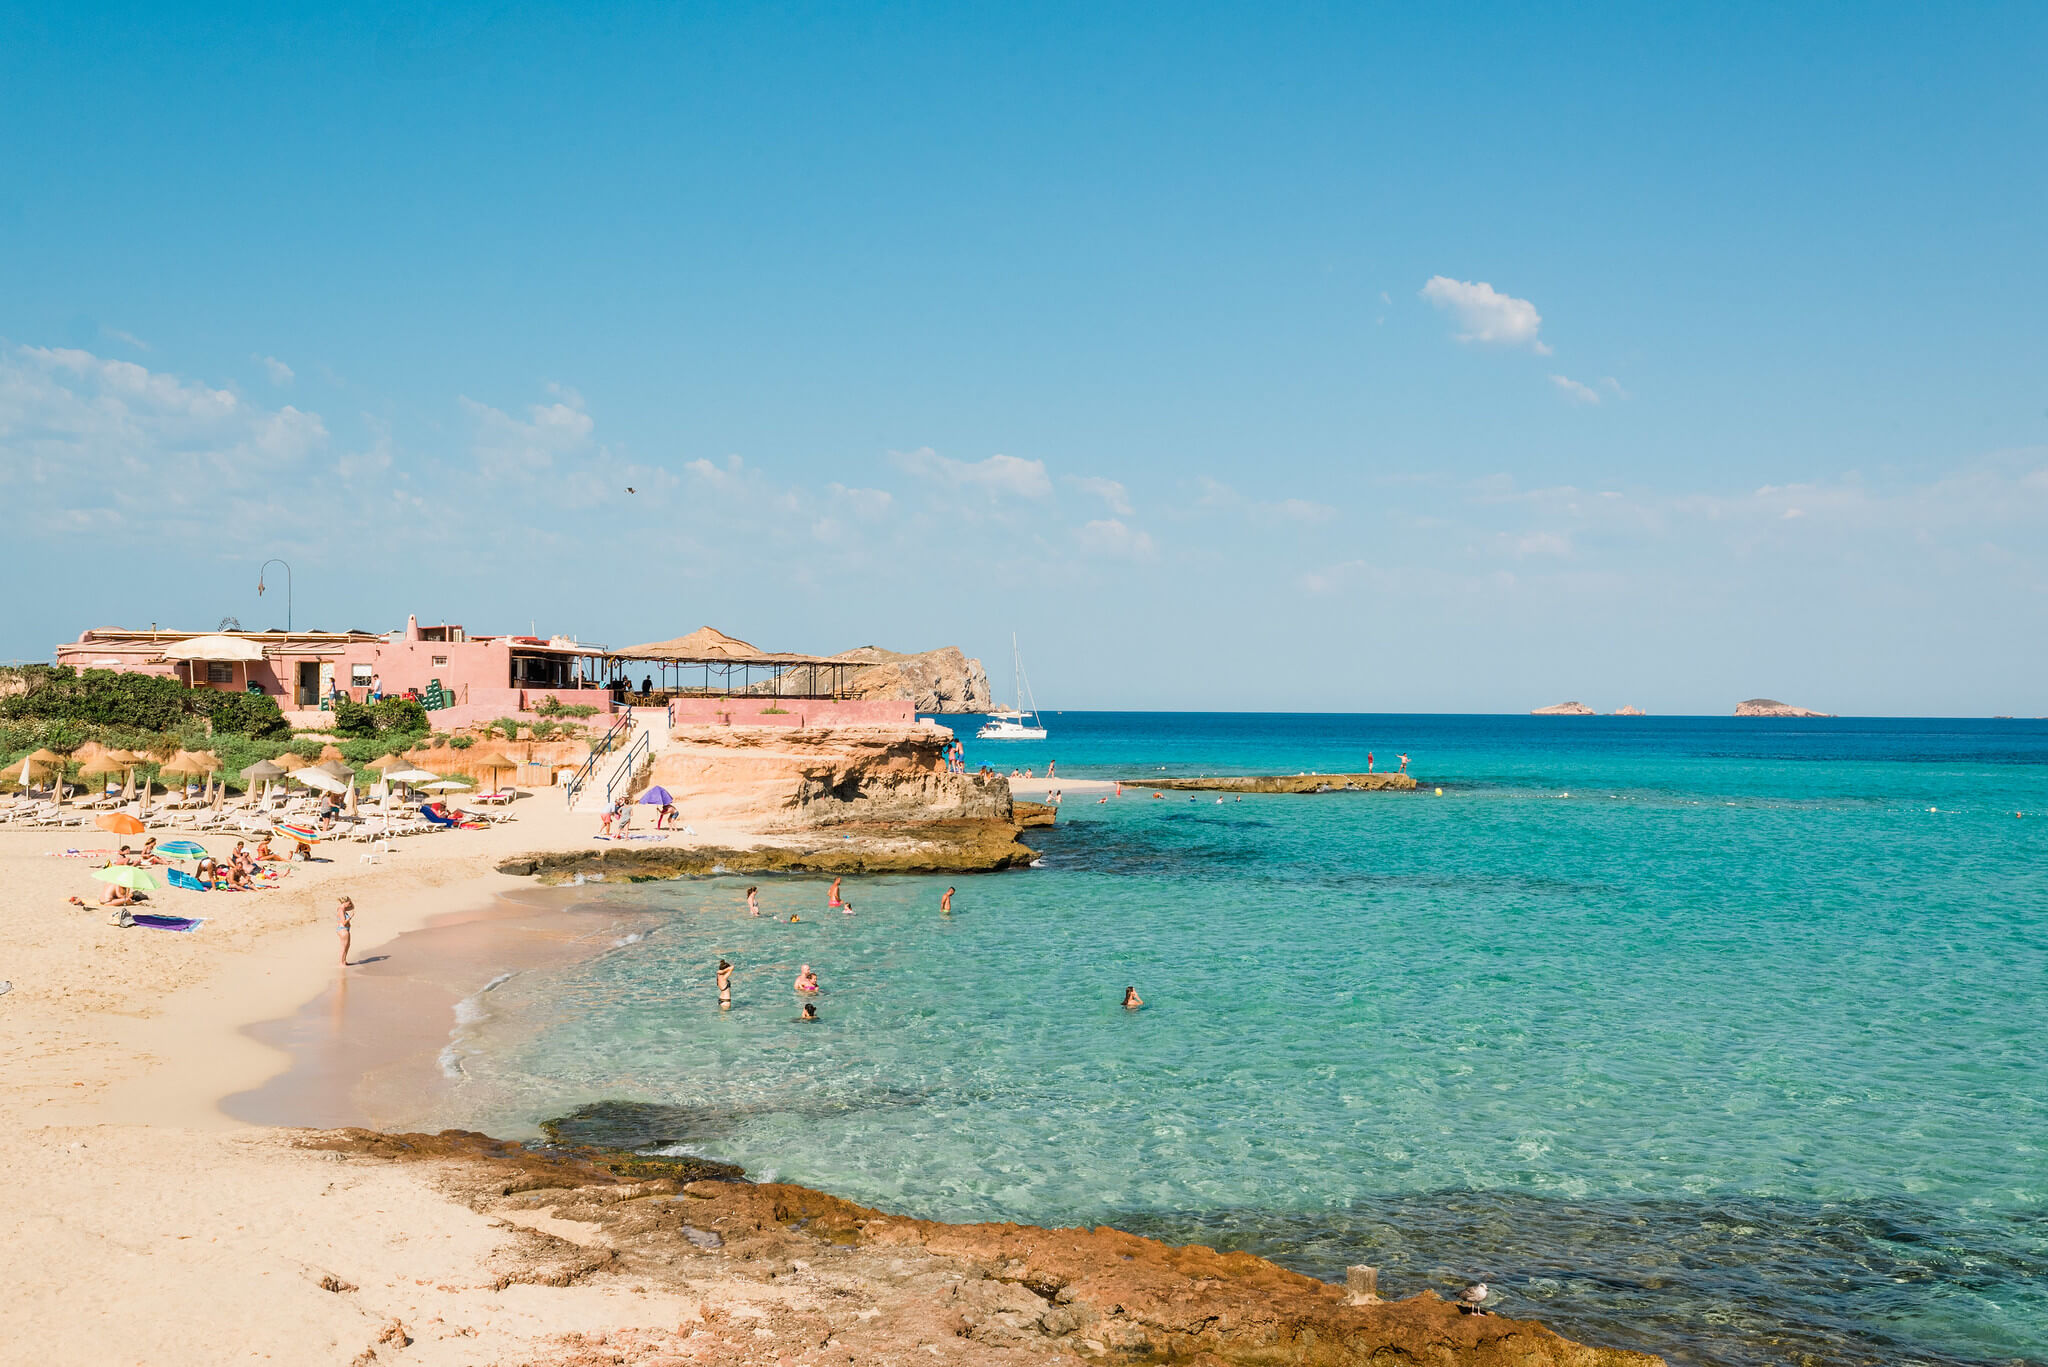 https://www.white-ibiza.com/wp-content/uploads/2020/03/ibiza-guide-areas-south-west-2020-06.jpg